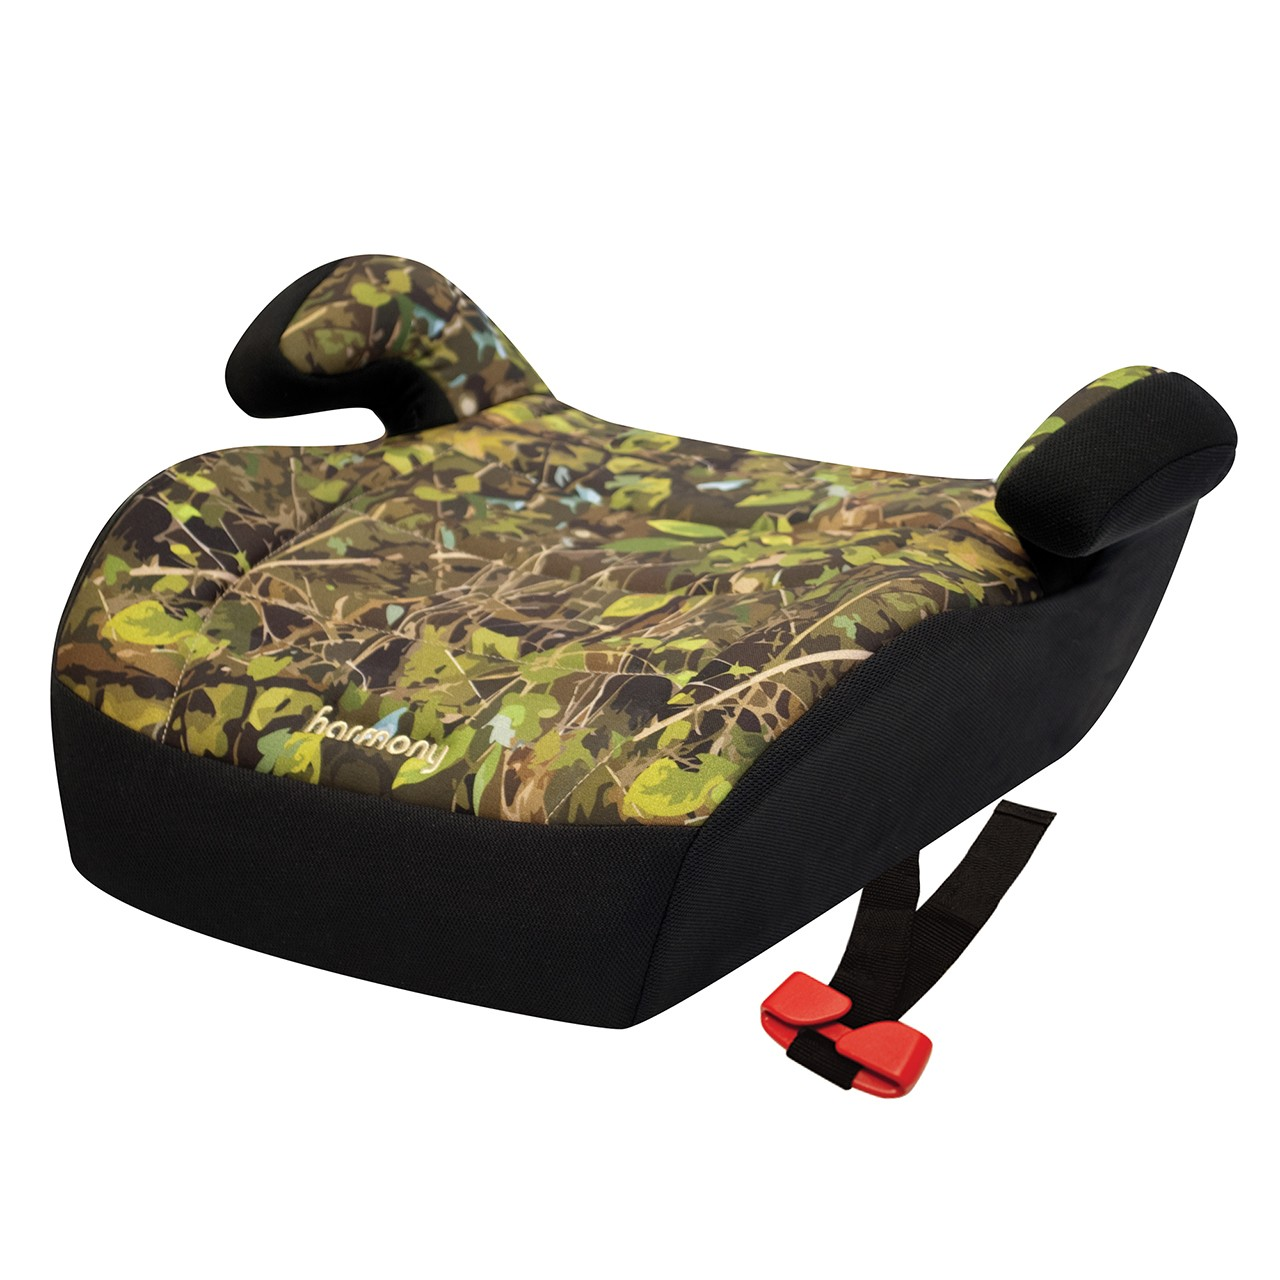 Youth Booster - Asiento elevador - Roble